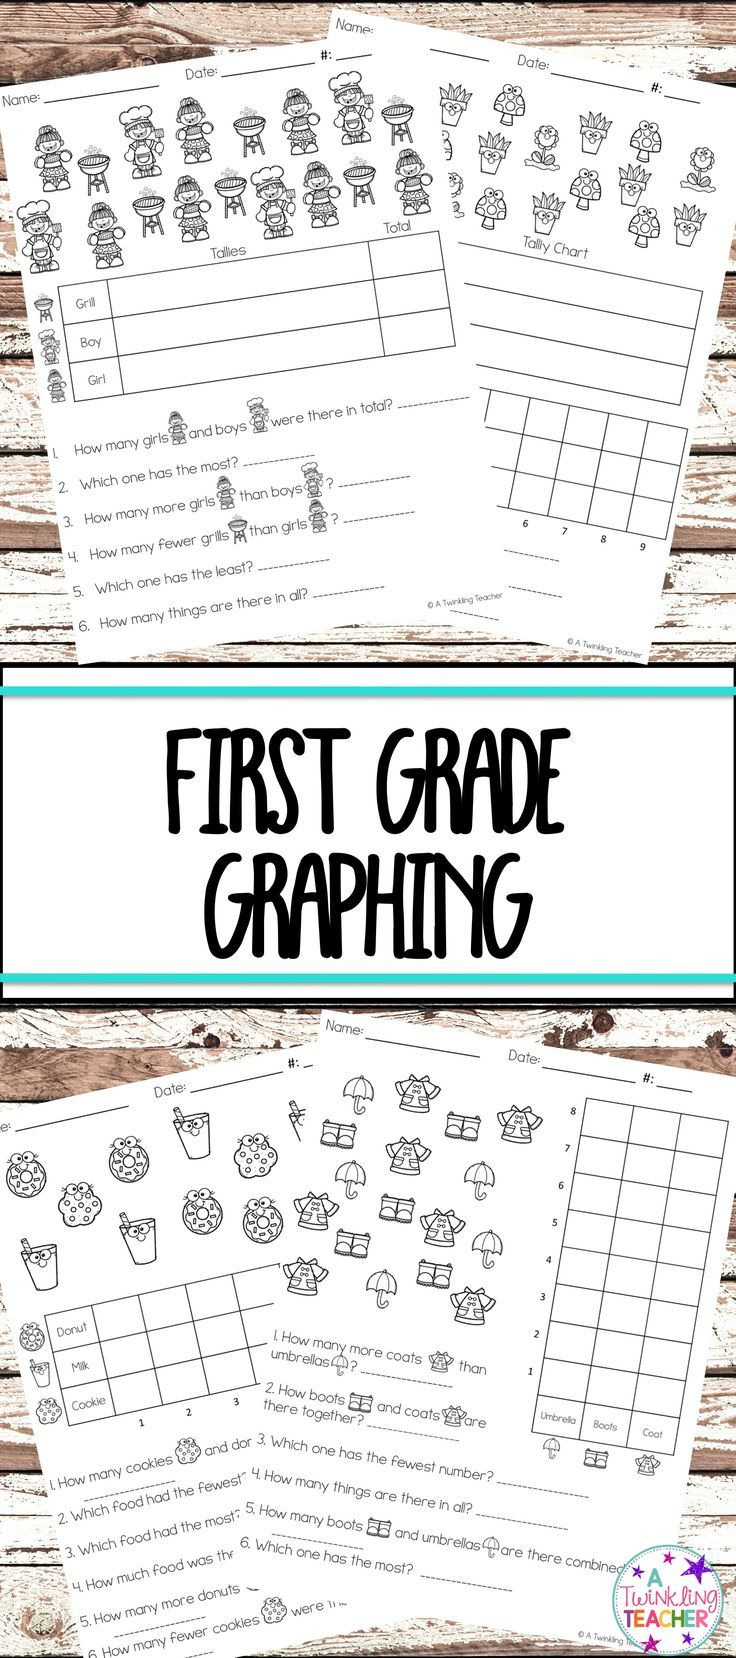 Easy Prep First Grade Graphing Just Print And Go 4 Styles Of Practicing With Tally Charts Math Activities Elementary 1st Grade Activities First Grade Math [ 1658 x 736 Pixel ]